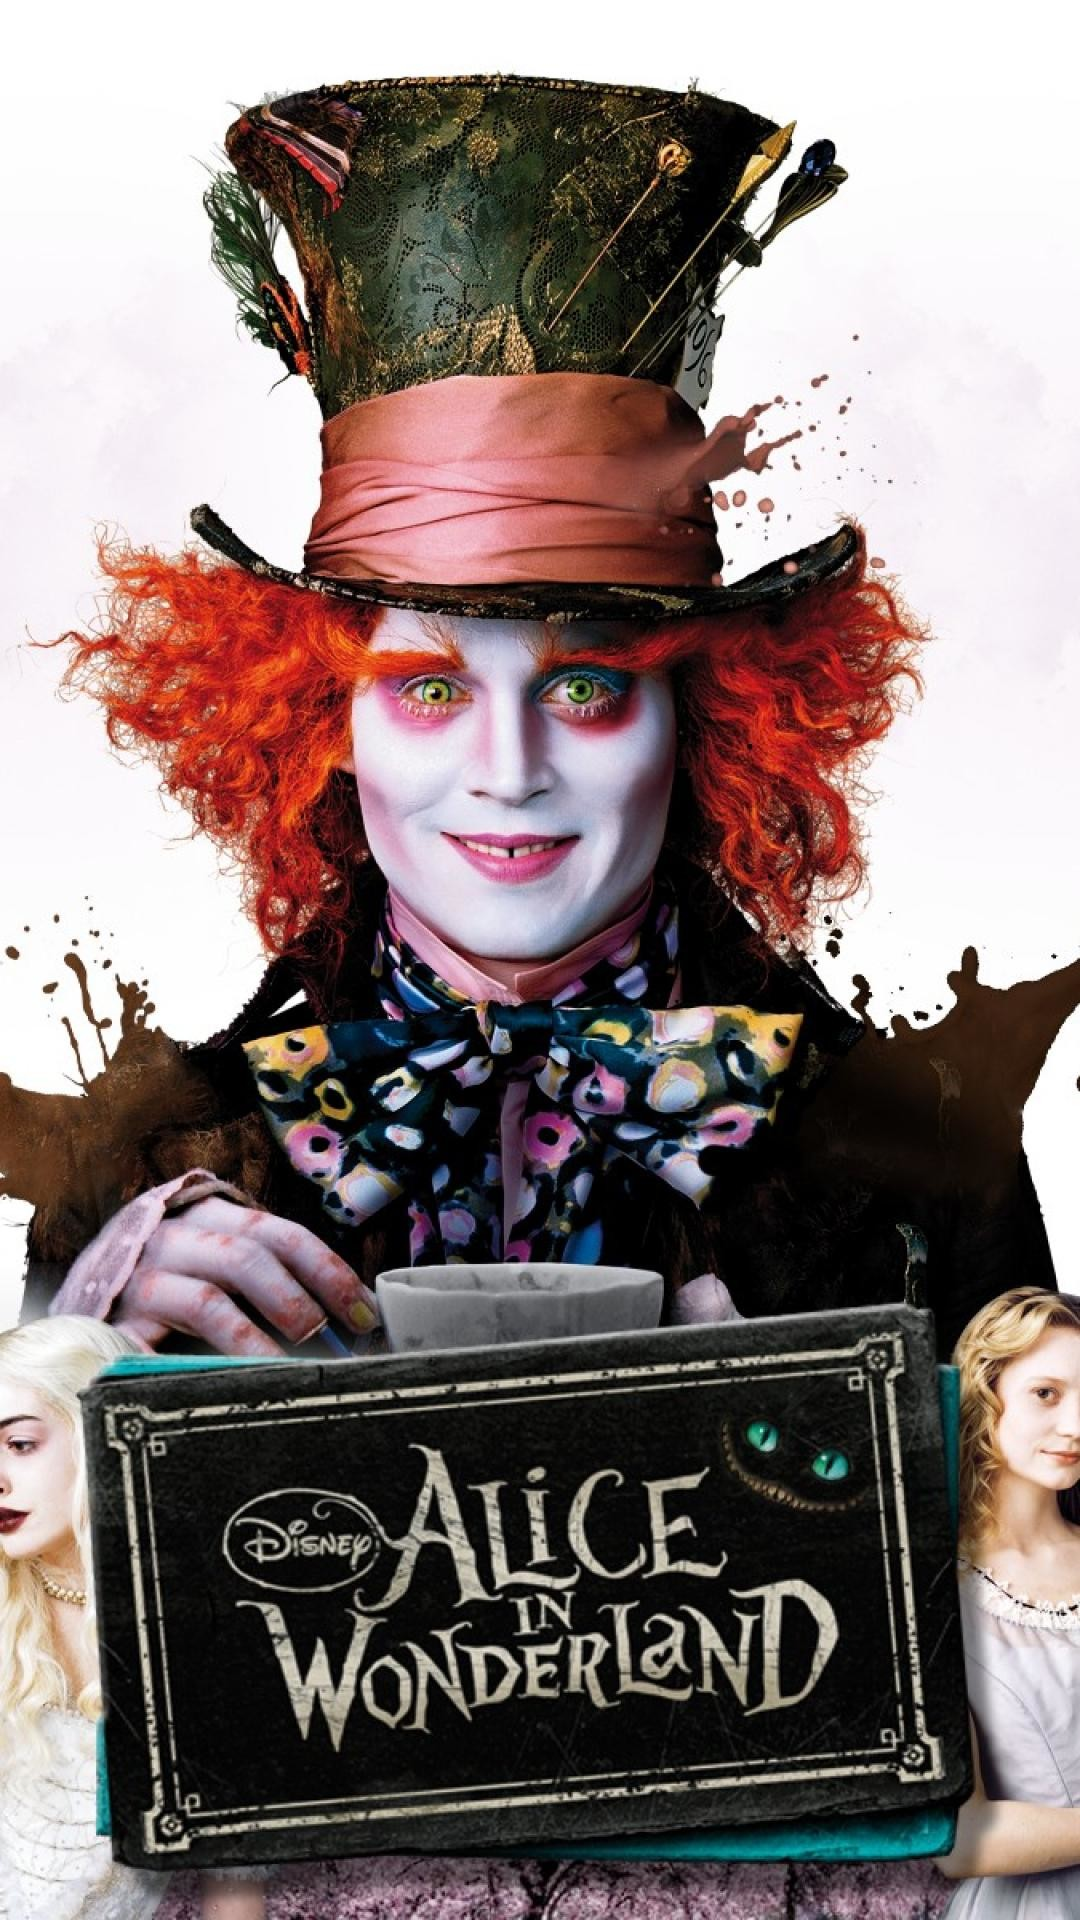 1080x1920 Wonderland mad hatter mia wasikowska johnny depp wallpaper .